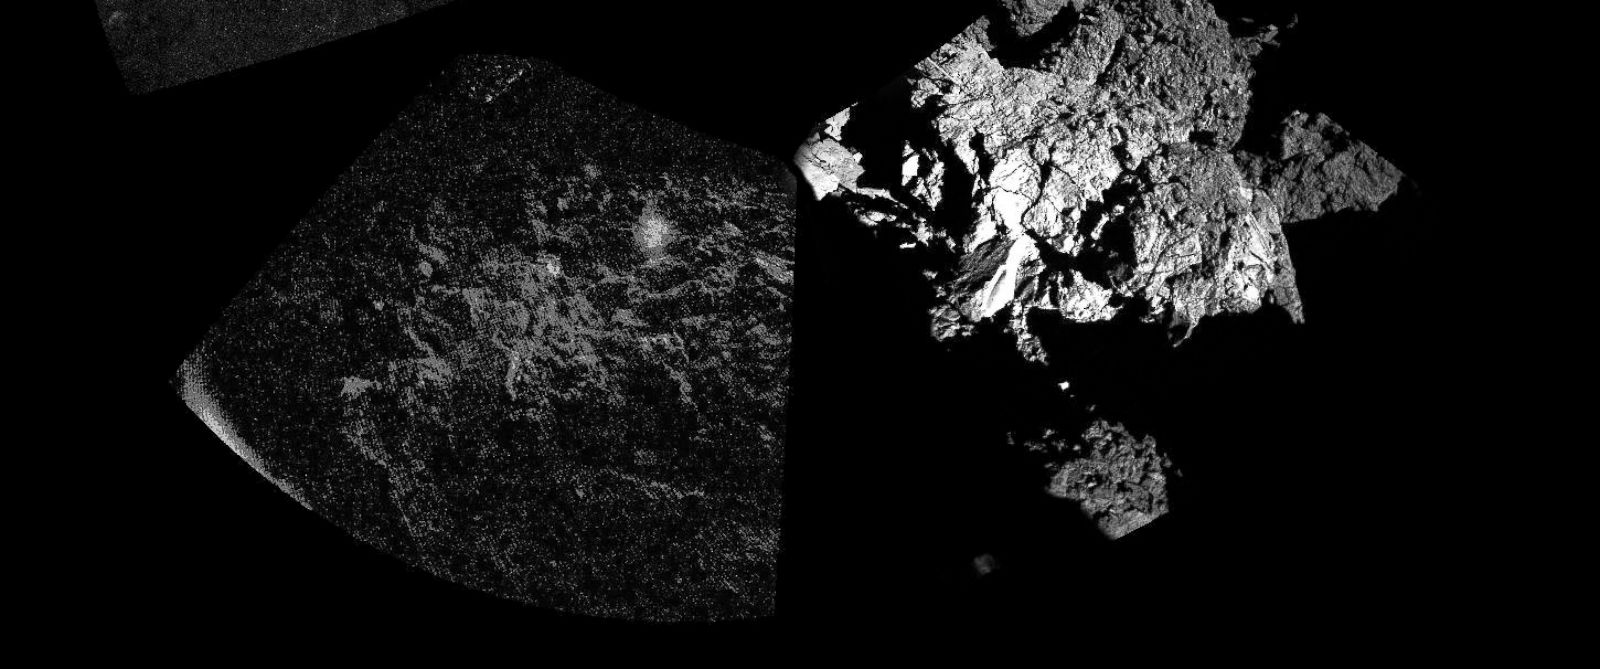 PHOTO: Rosetta's lander Philae has returned the first panoramic image from the surface of a comet, Nov. 13, 2014.